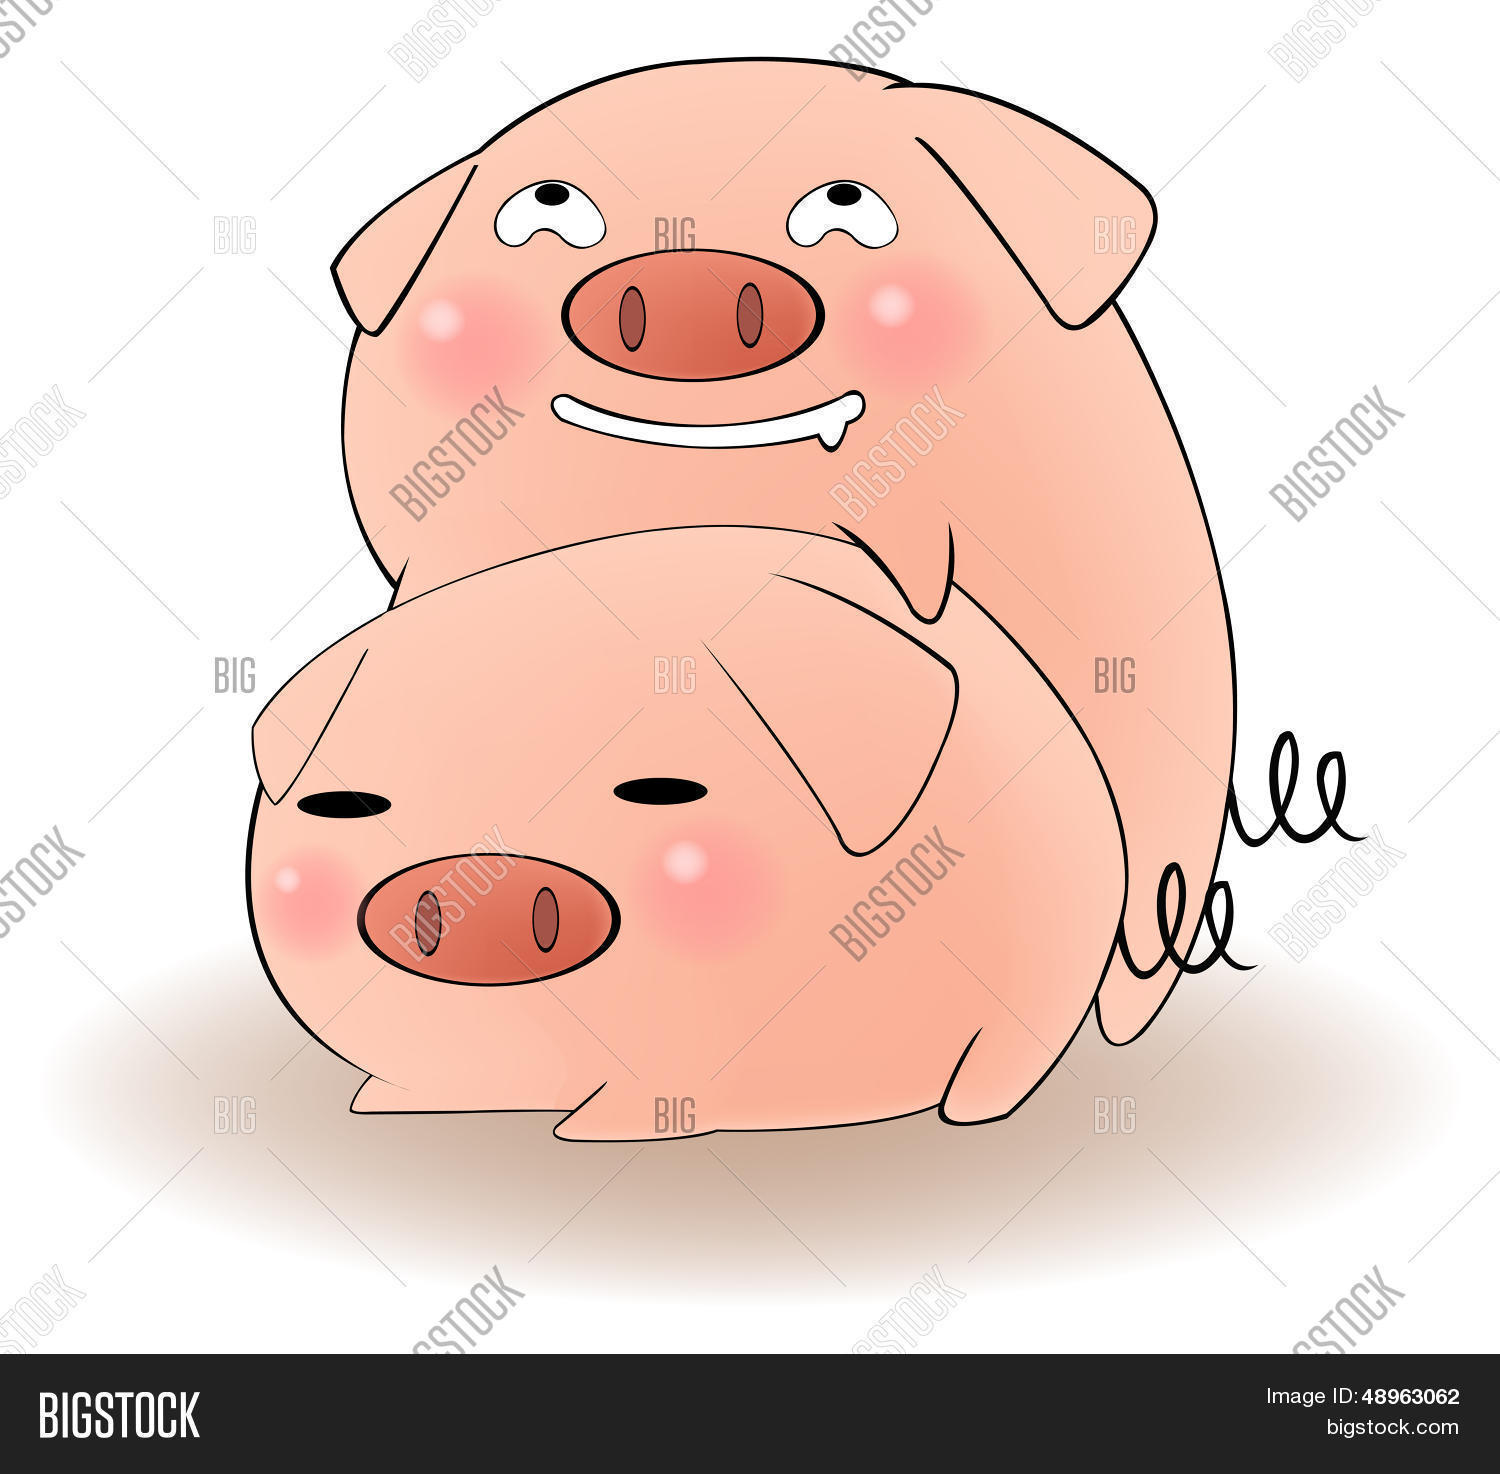 two cartoon pigs having sex vector & photo | bigstock